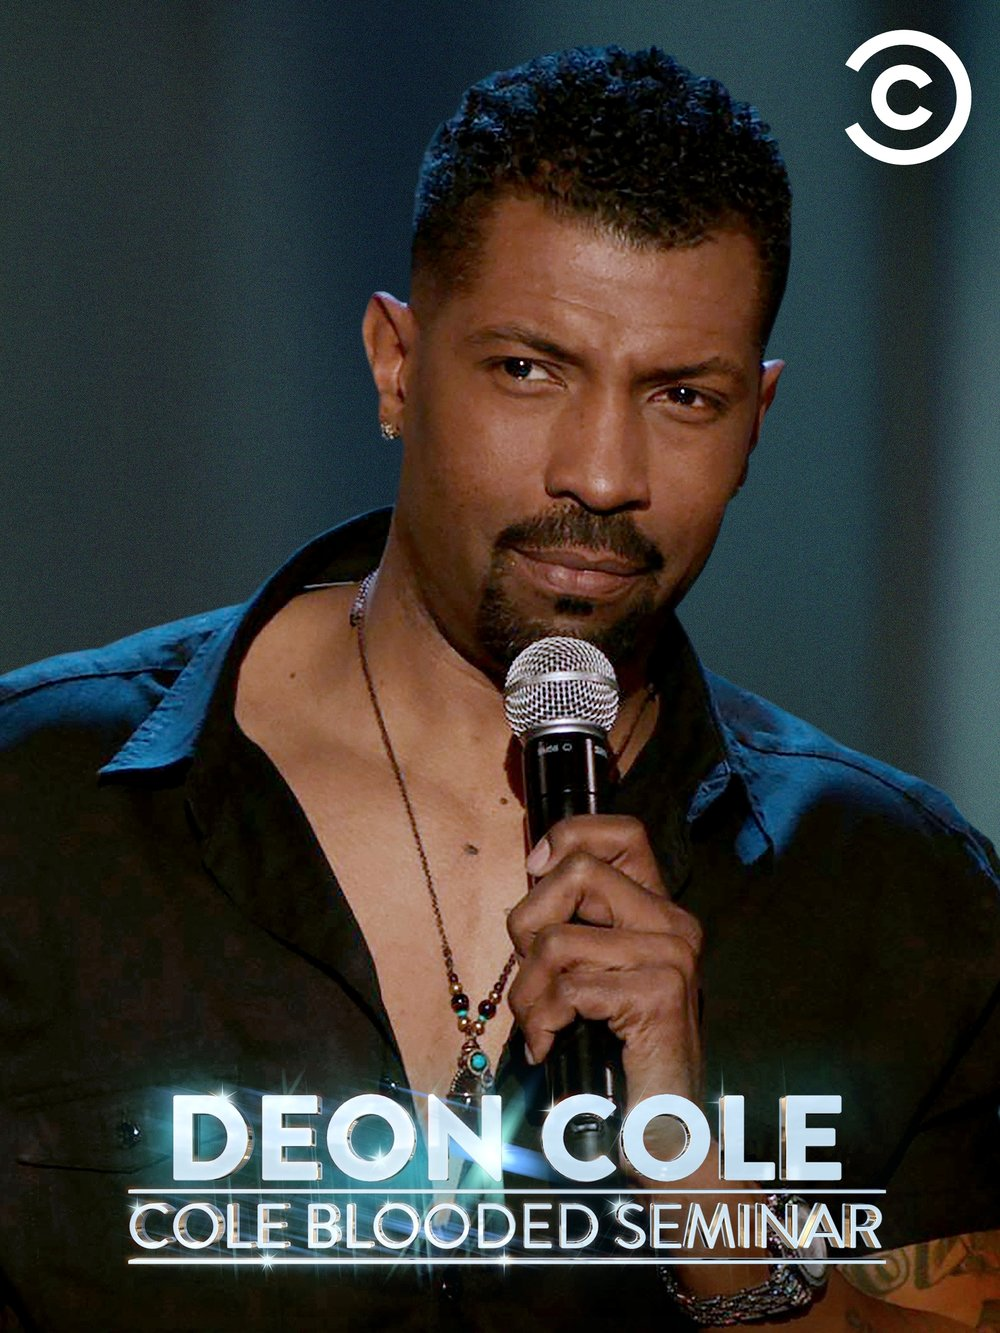 Deon Cole Cole Blodded Seminar.jpg